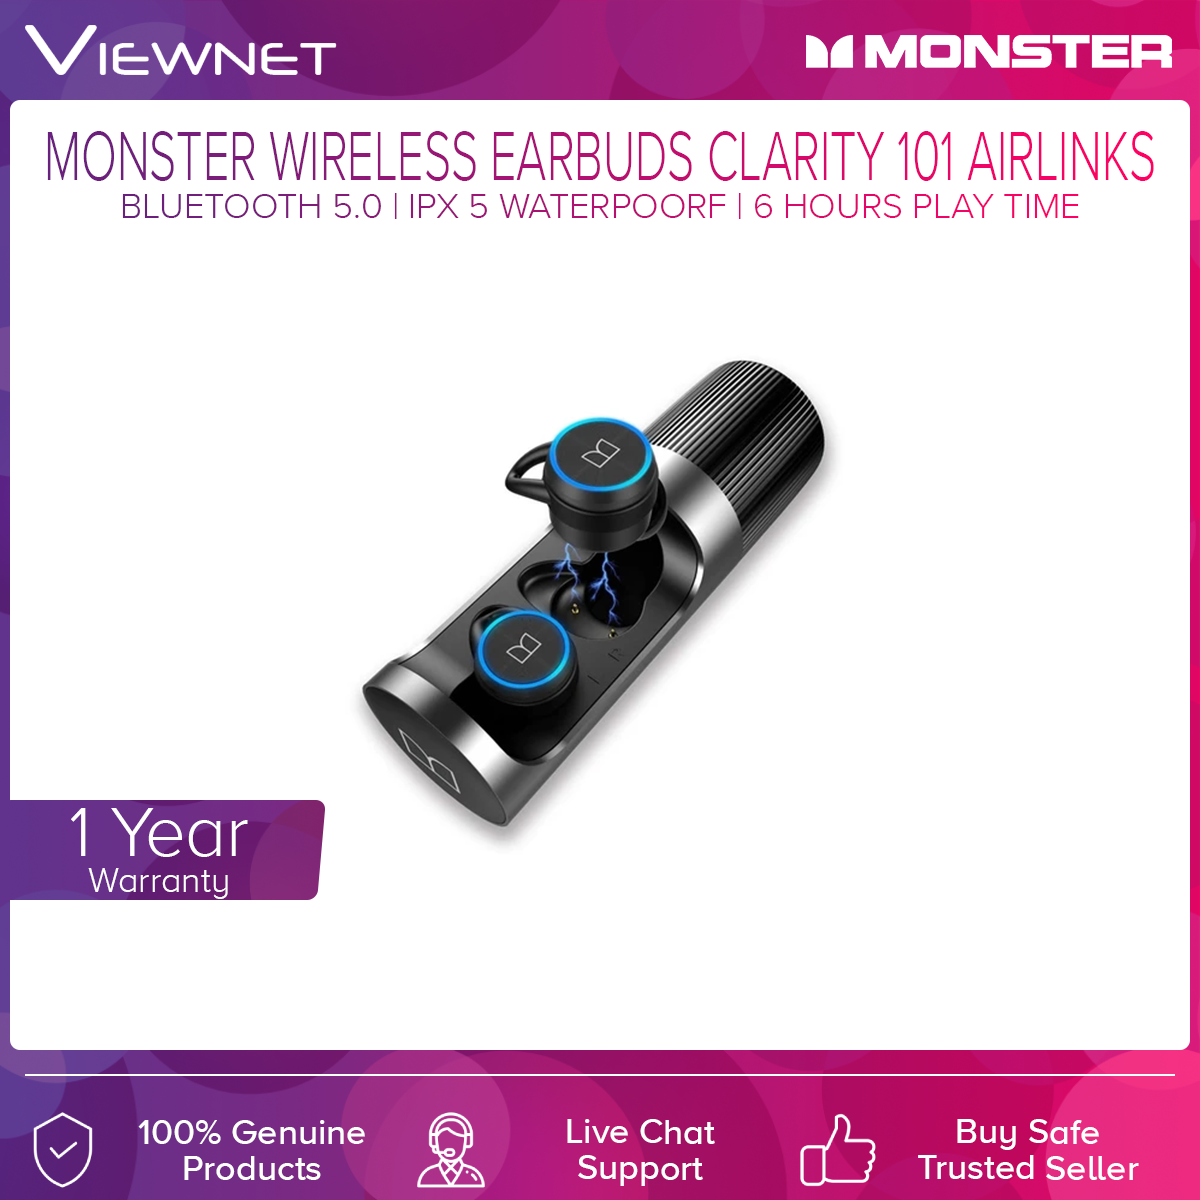 Monster Clarity 101 Airlinks IPX5 Waterproof TWS True Wireless Bluetooth 5.0 Earbuds with Charging Case/Built-in Mic/Clear Call/Secure Fit for Sports